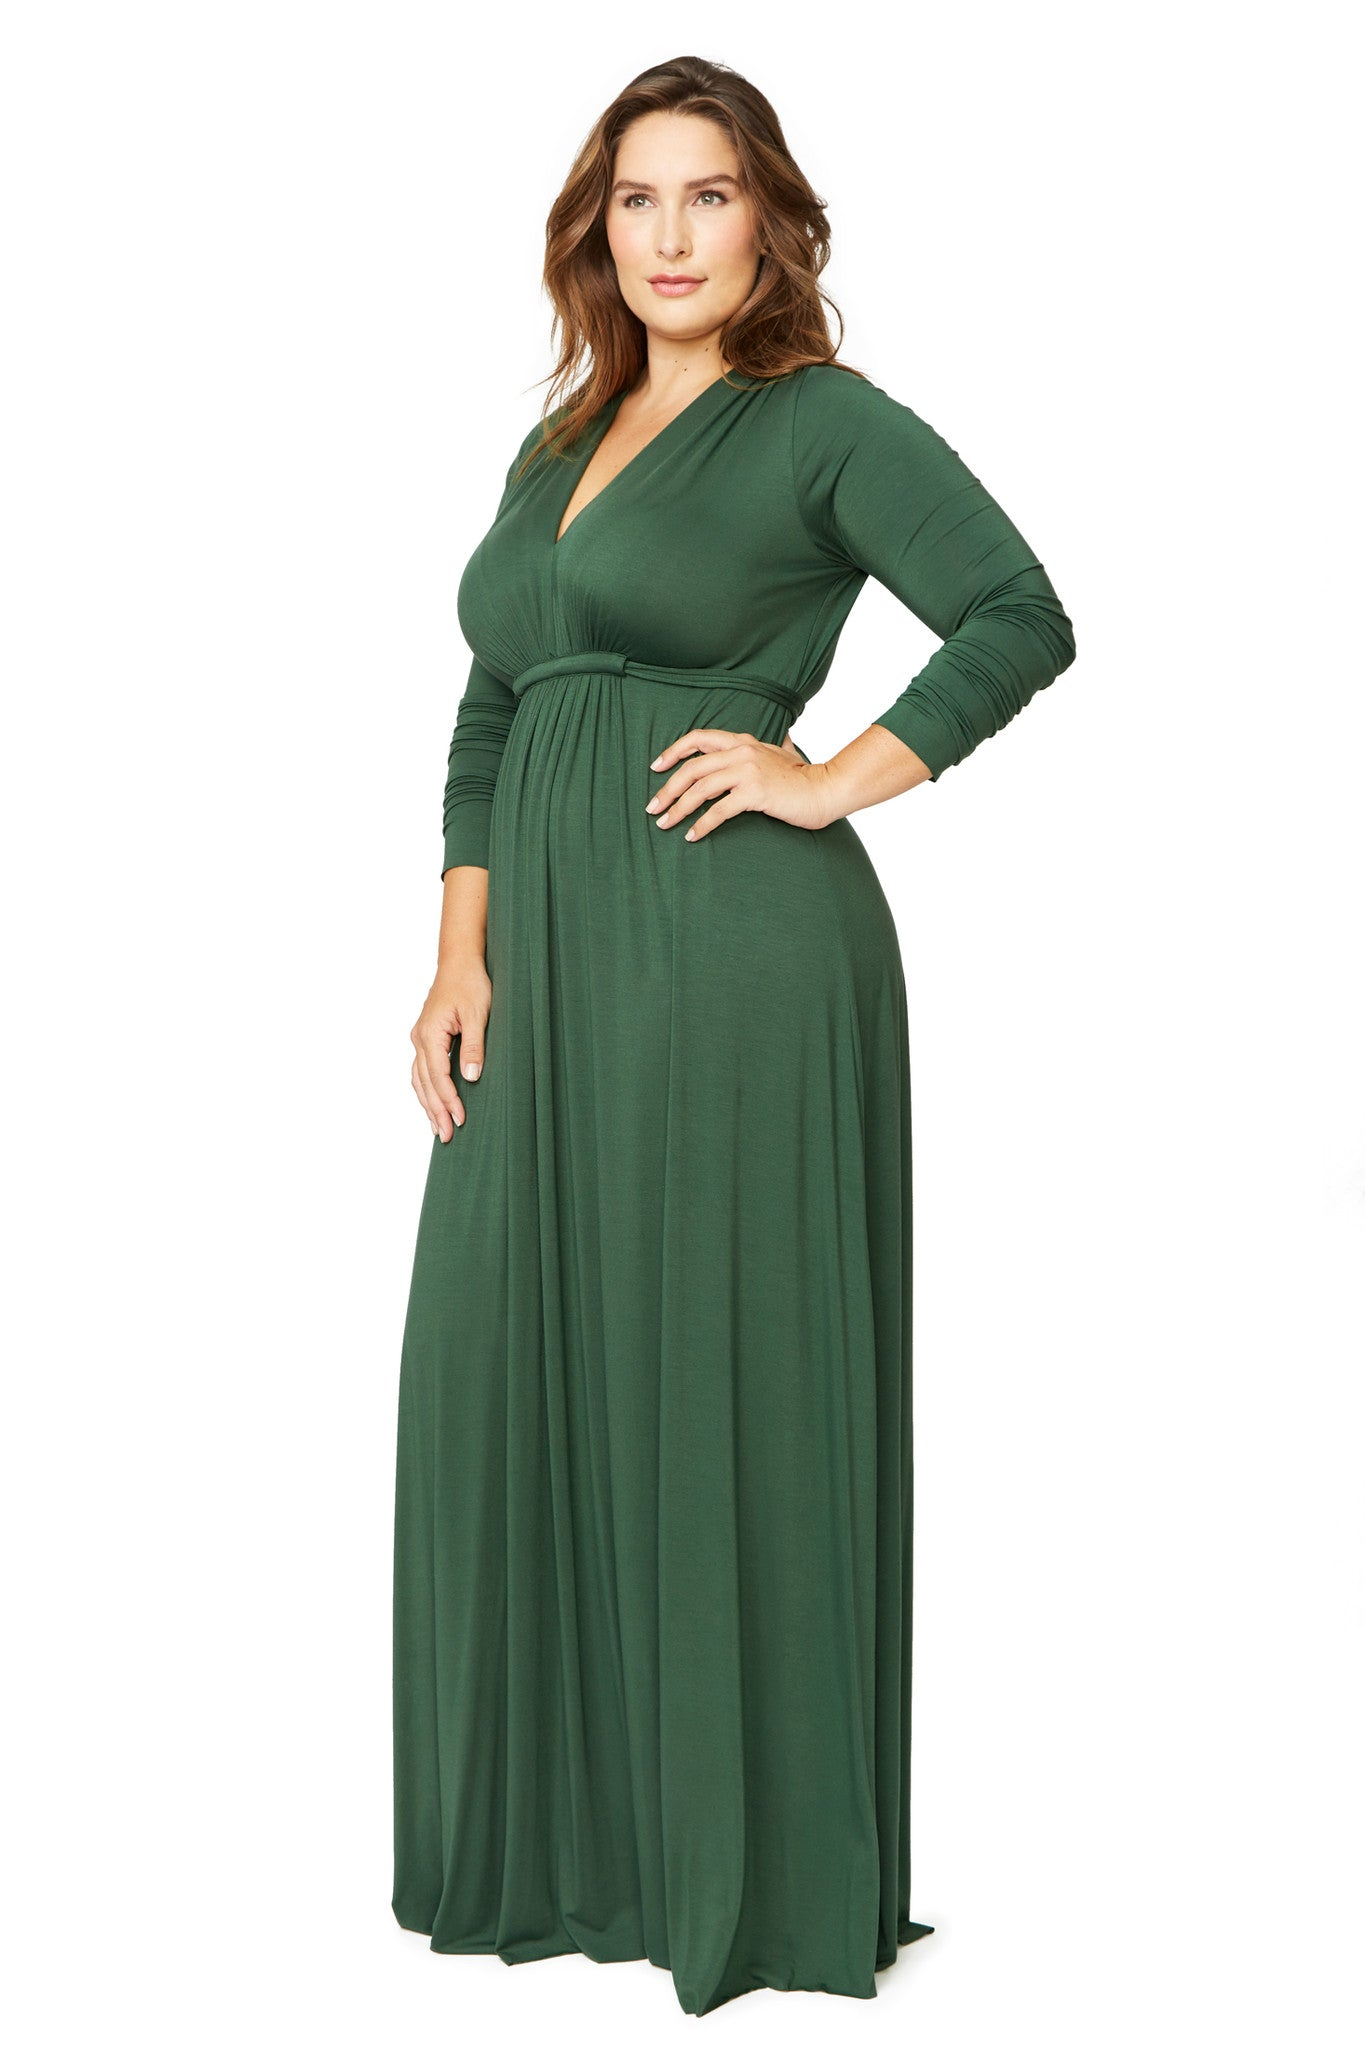 Long Sleeve Full Length Caftan - Fir, Plus Size